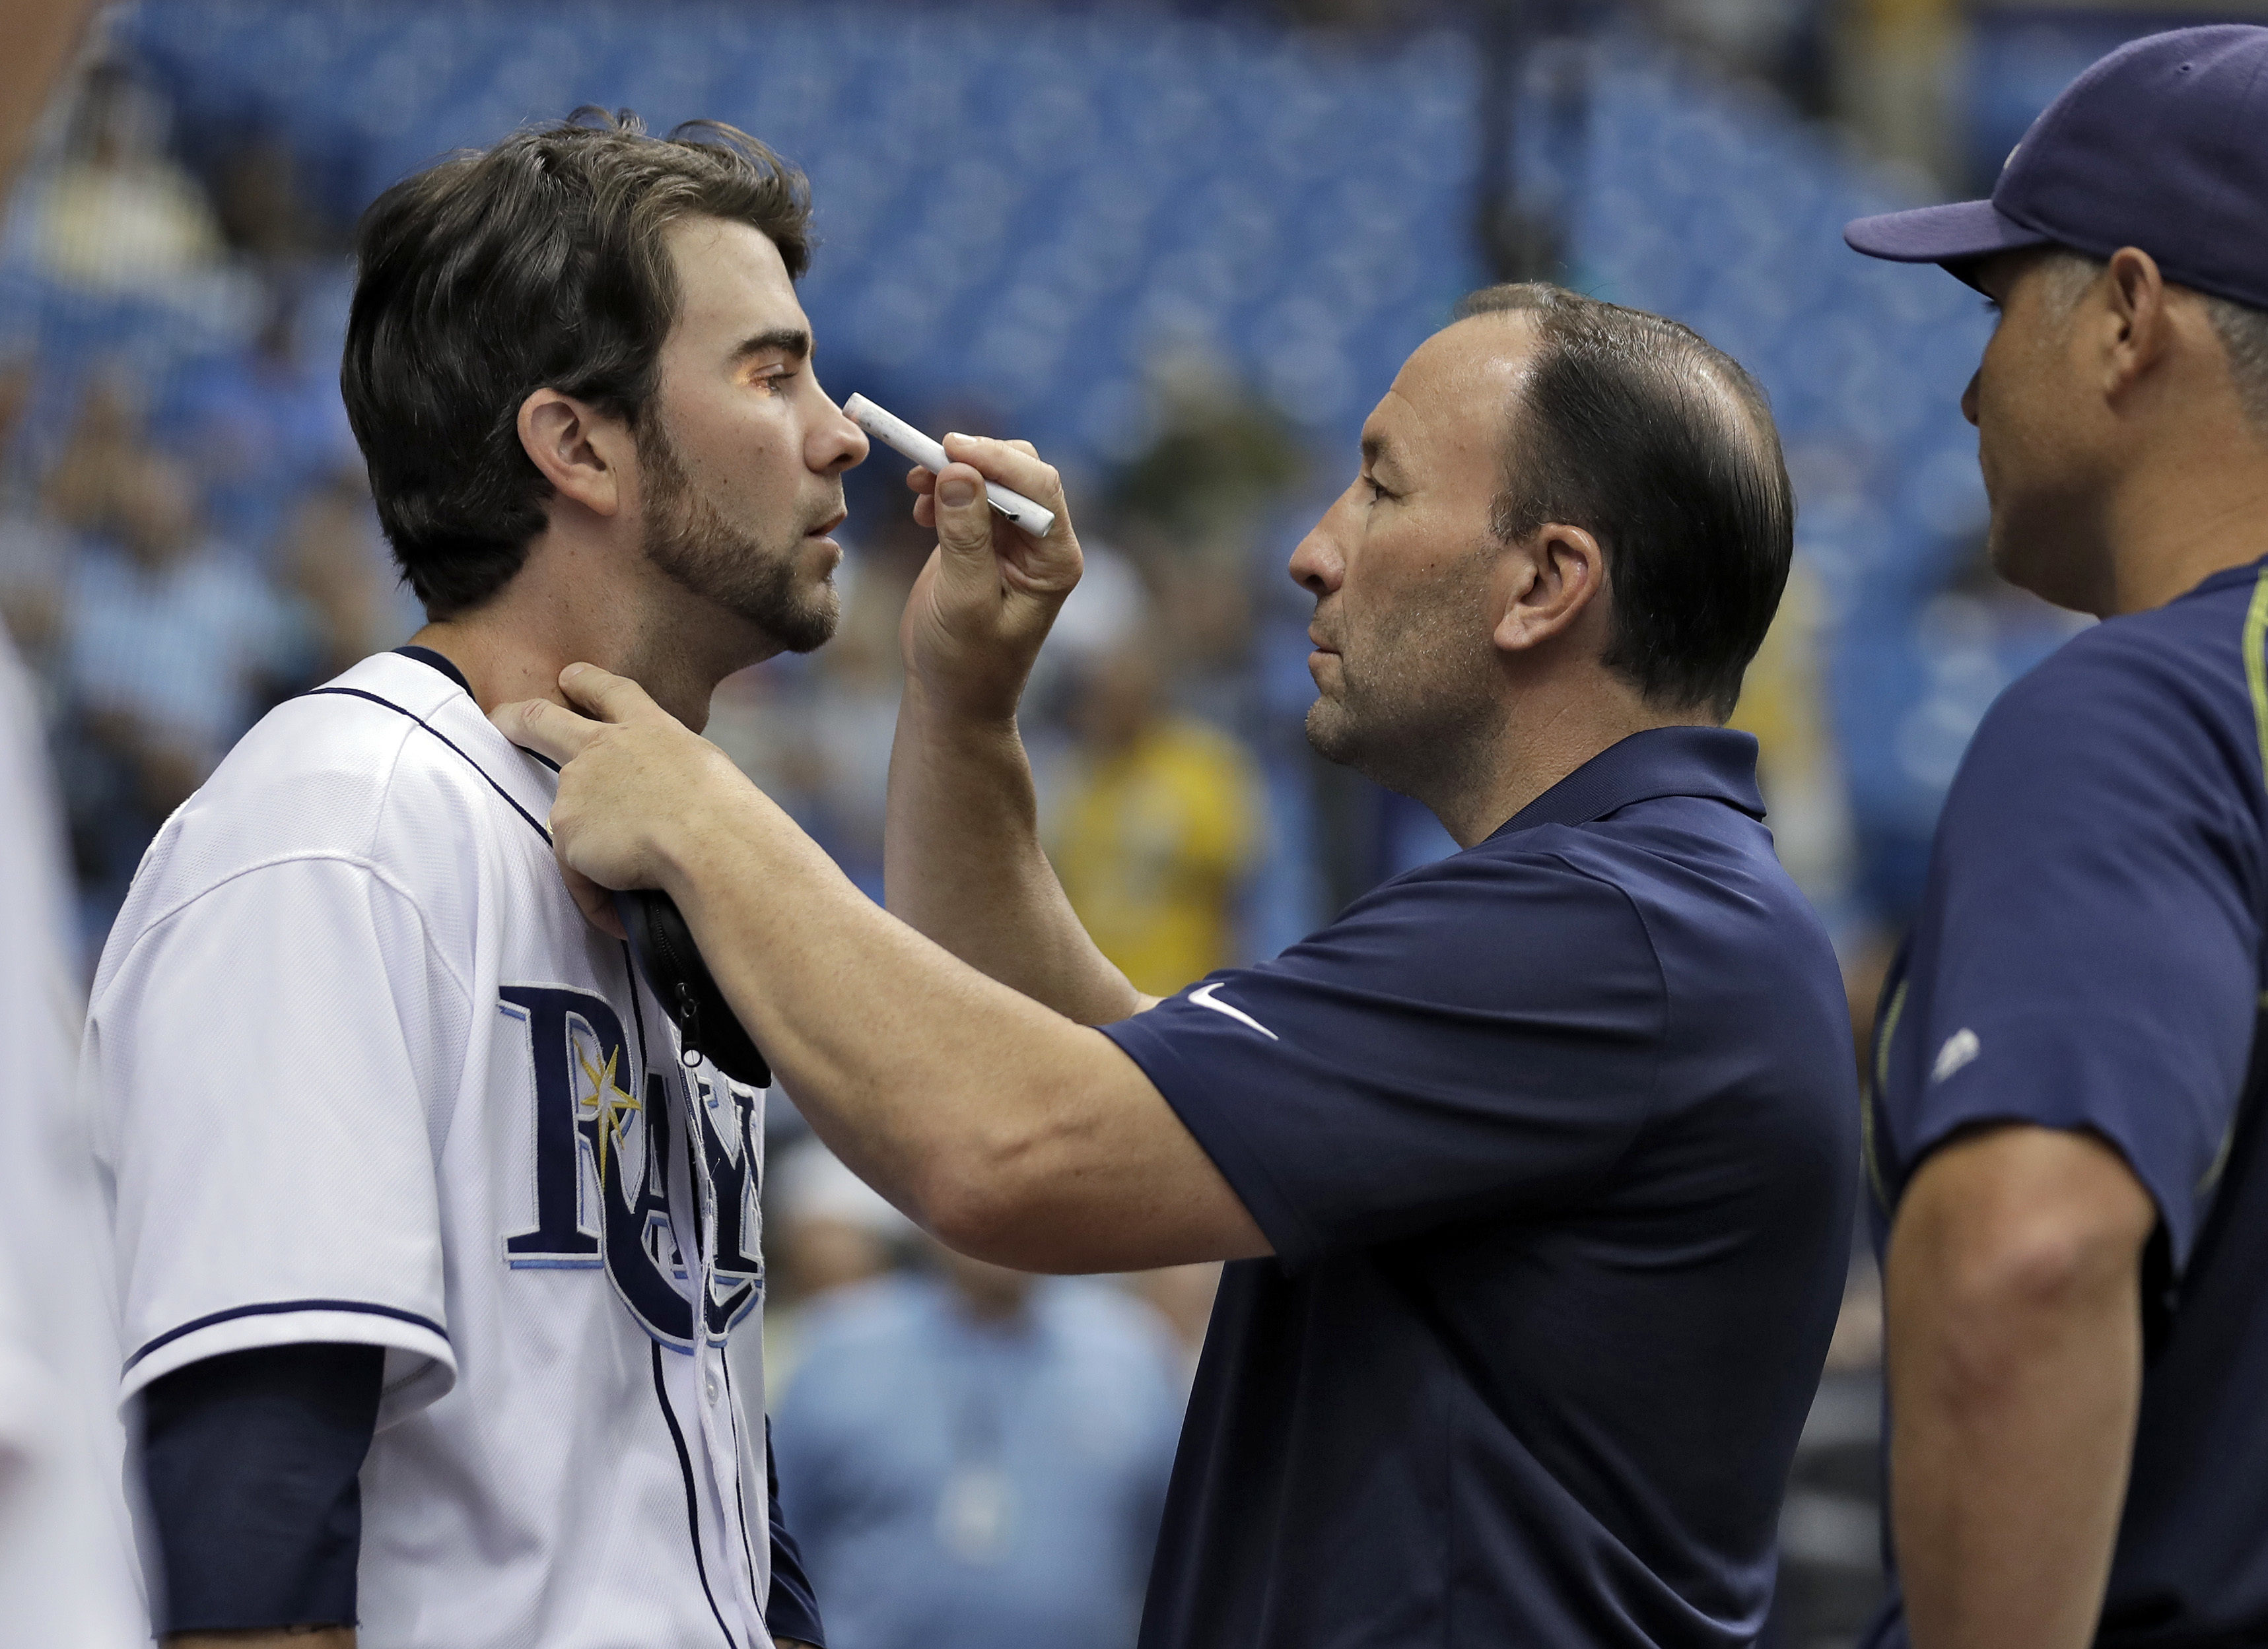 Tampa Bay Rays trainer Ron Porterfield, center, checks on Nick Franklin, left, after Franklin was hit with a bat while in the on-deck circle during the first inning of an interleague baseball game Wednesday, Aug. 17, 2016, in St. Petersburg, Fla. Looking